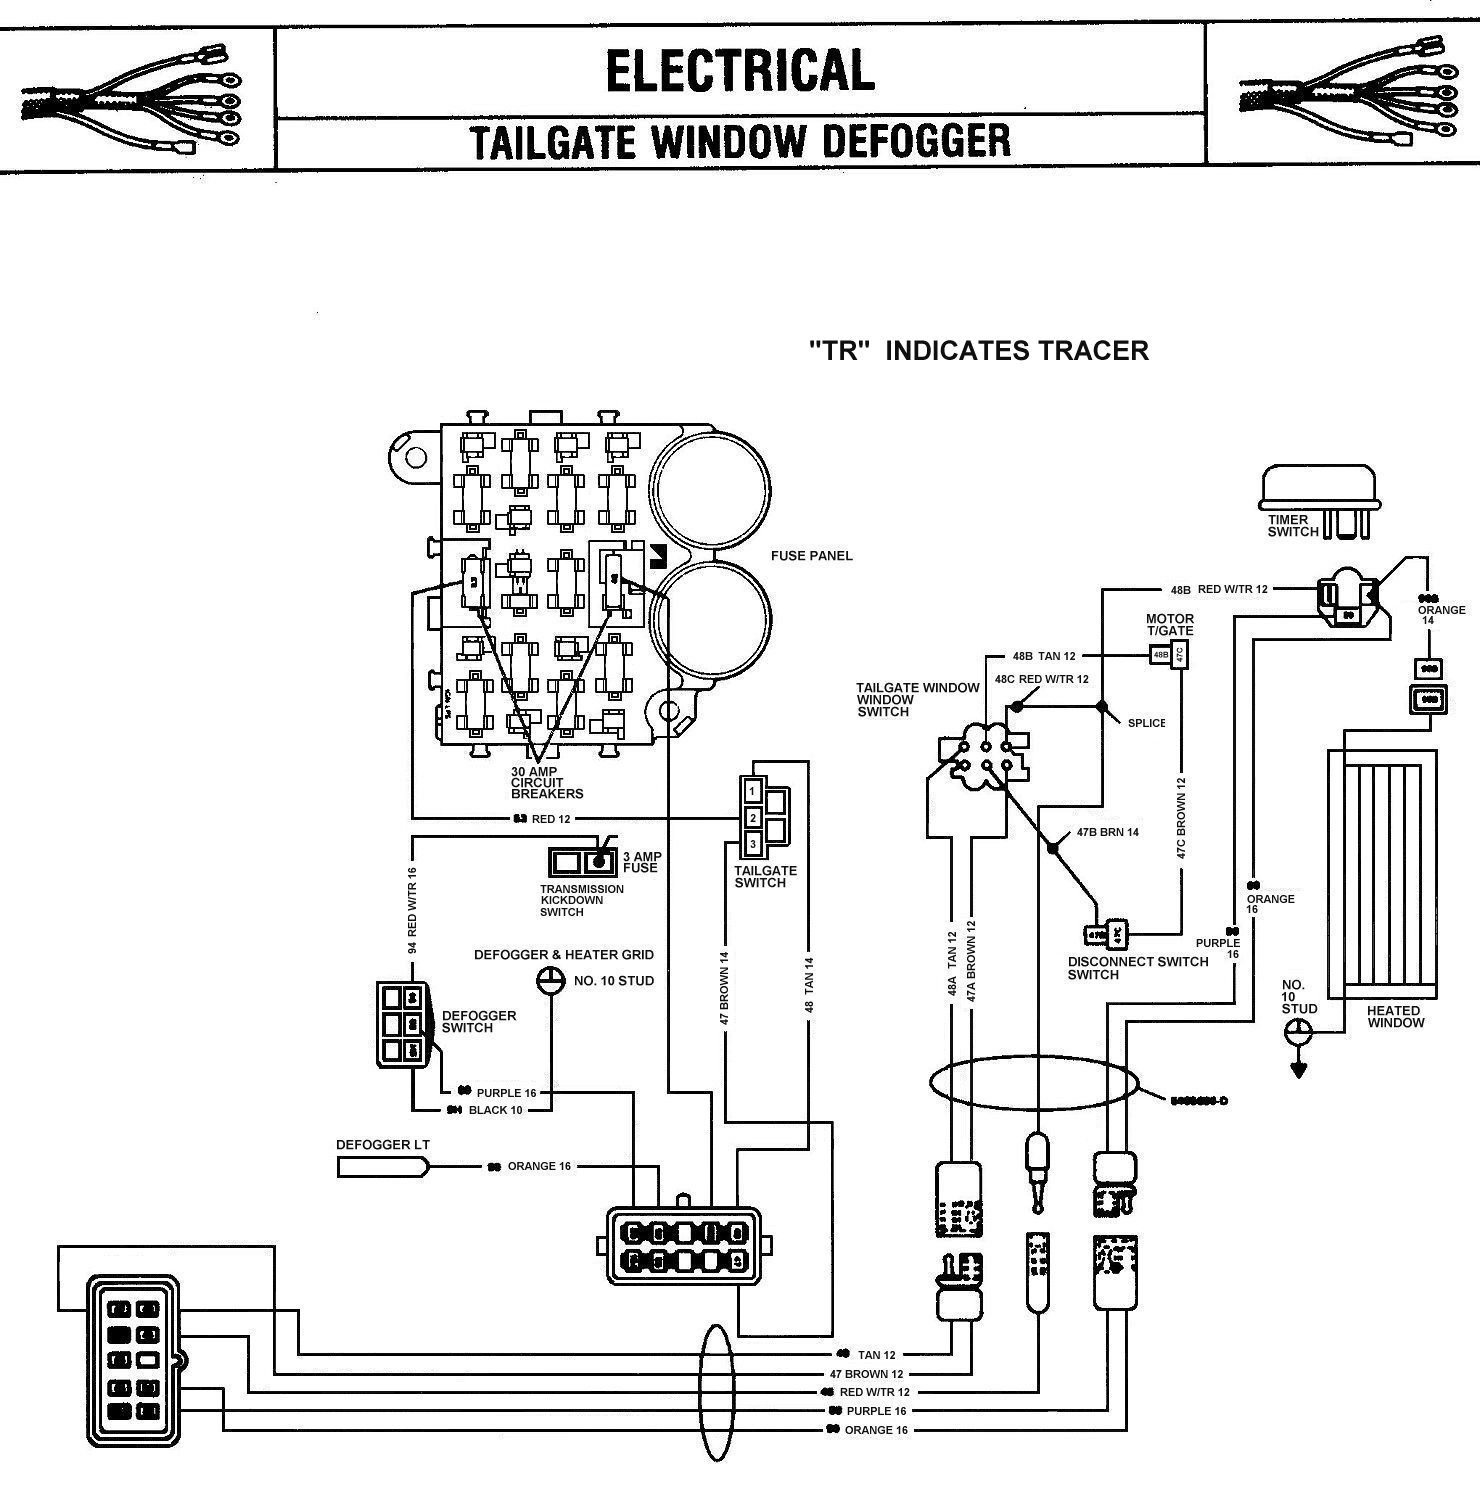 Cj3a Wiring Diagram Schematic Name Boat Ammeter 6 Volt To 12 Conversion Jeep Library 1985 Toyota Truck Wire Harness